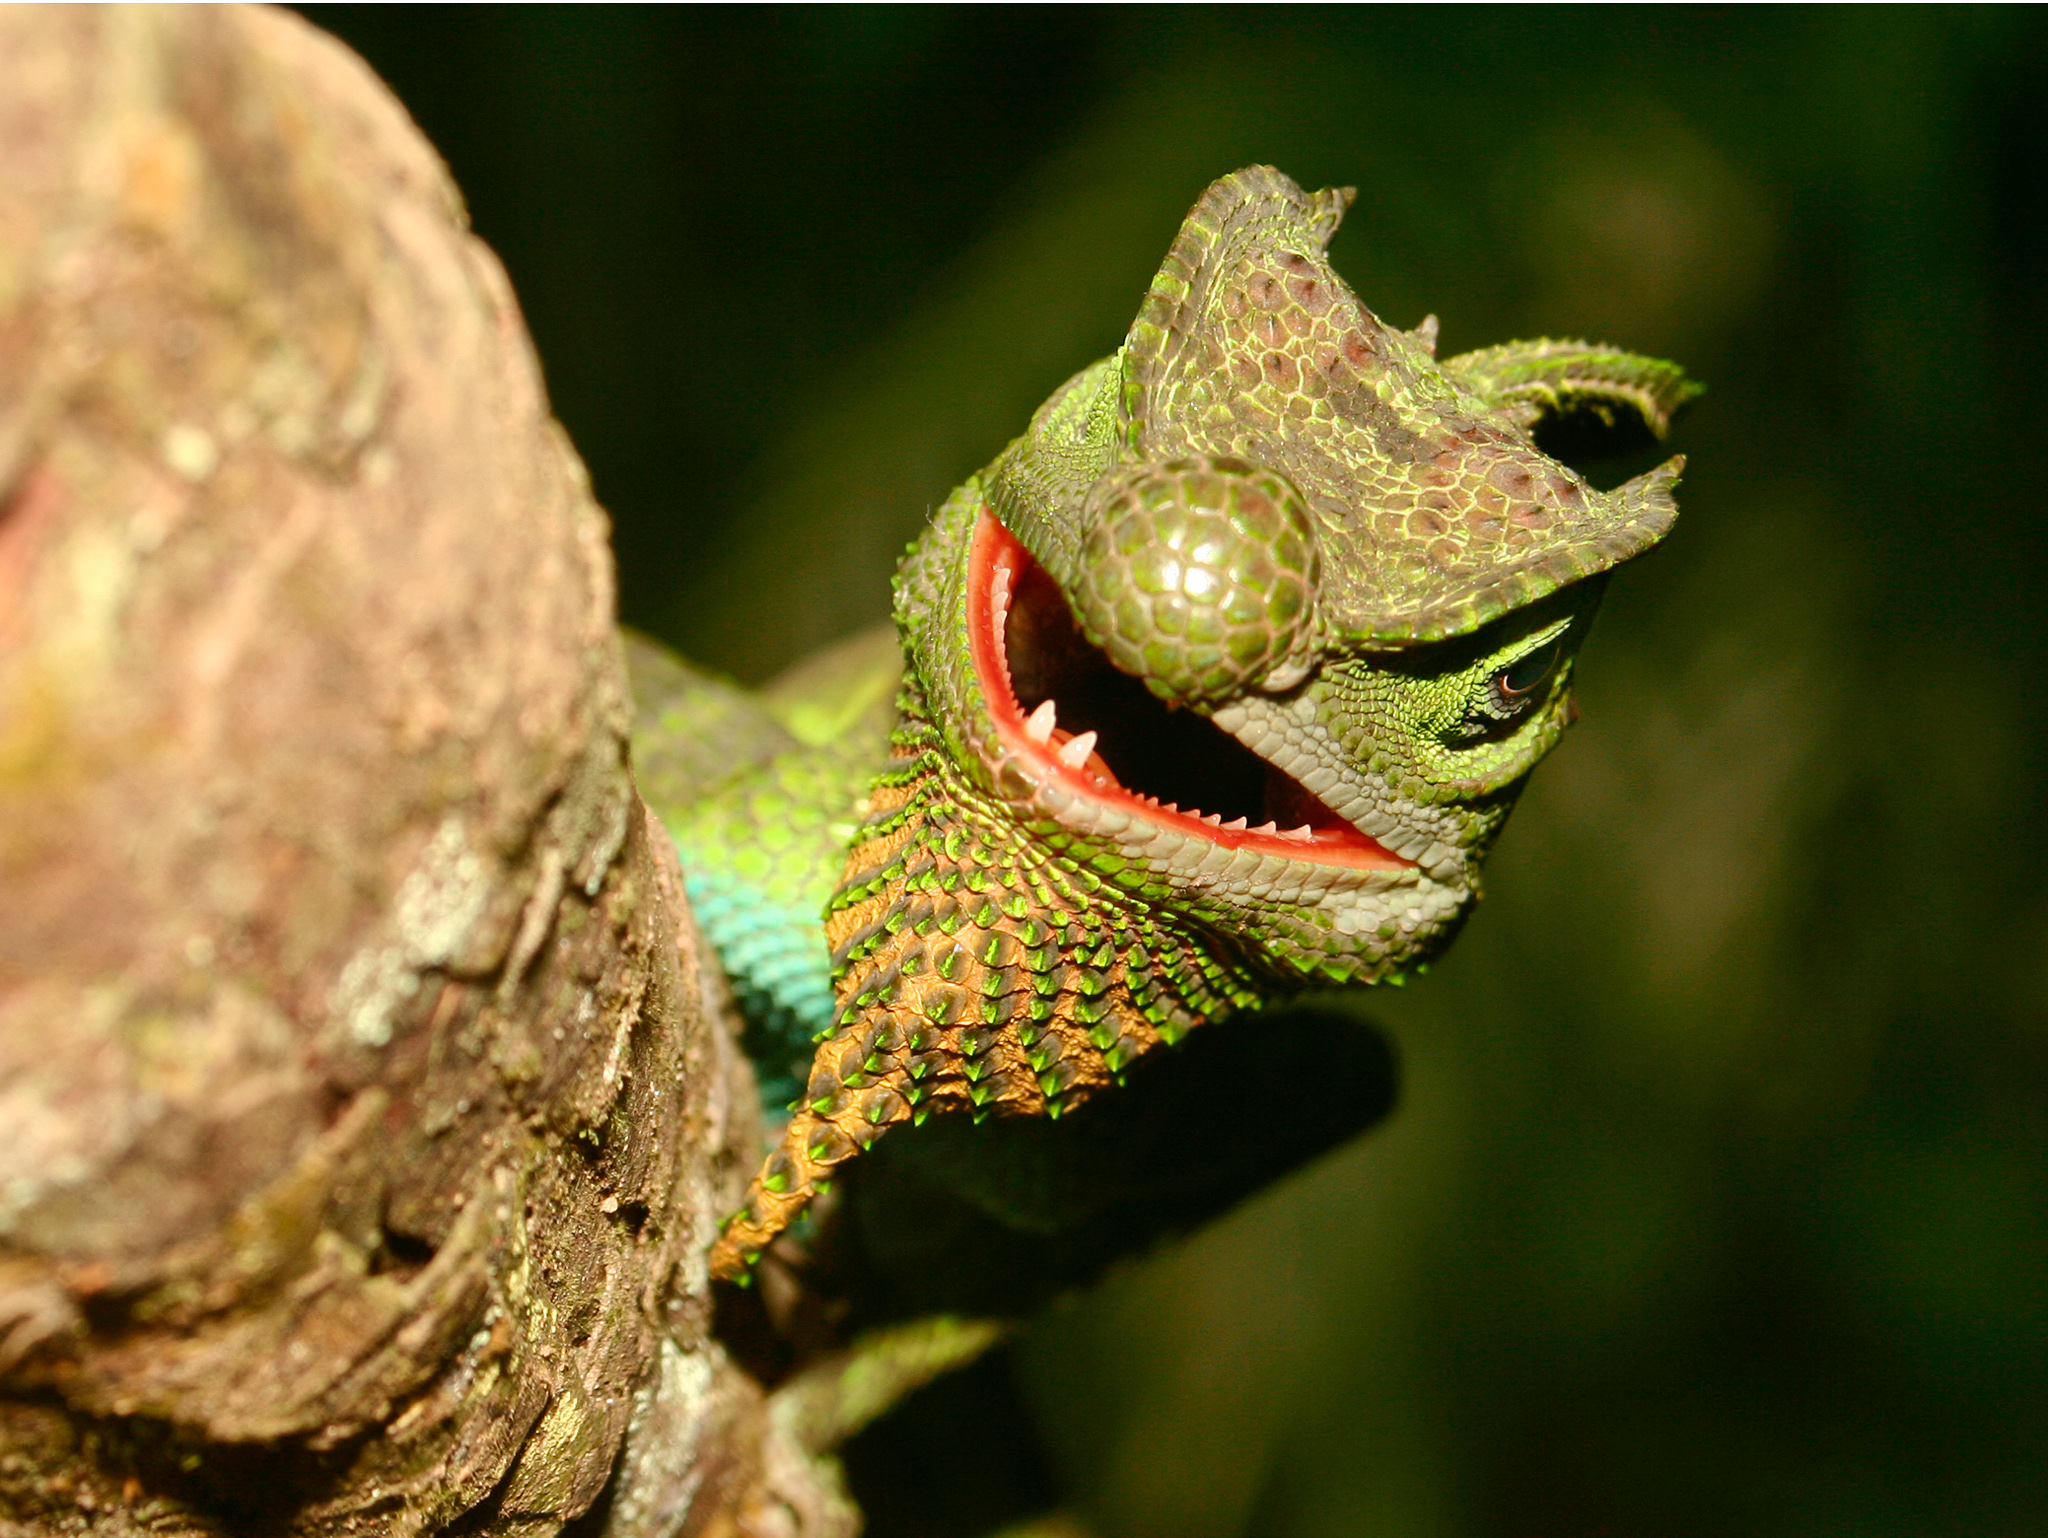 Horny Lizard with Open Mouth 783.34 Kb